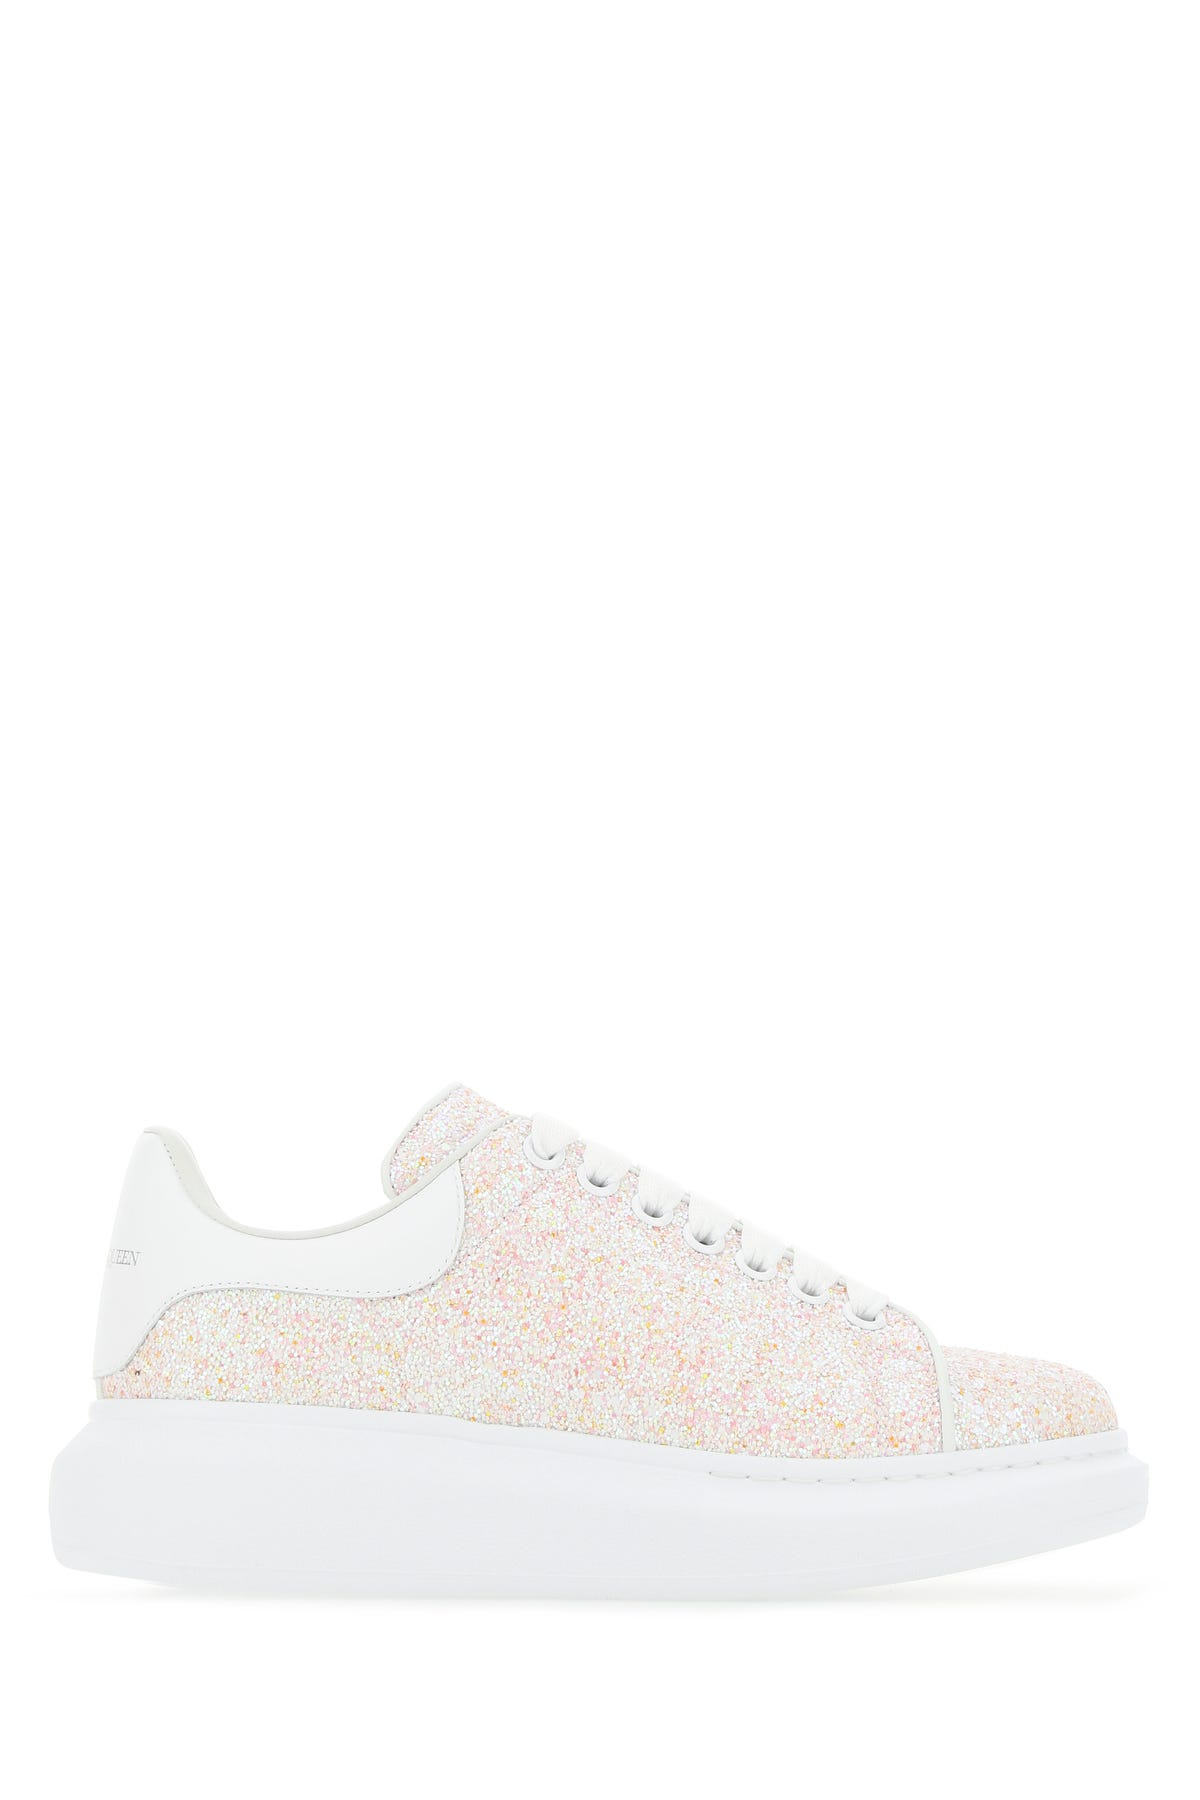 Alexander Mcqueen Glitters EMBELLISHED LEATHER WITH WHITE LEATHER HEEL SNEAKERS  ND ALEXANDER MCQUEEN DONNA 37